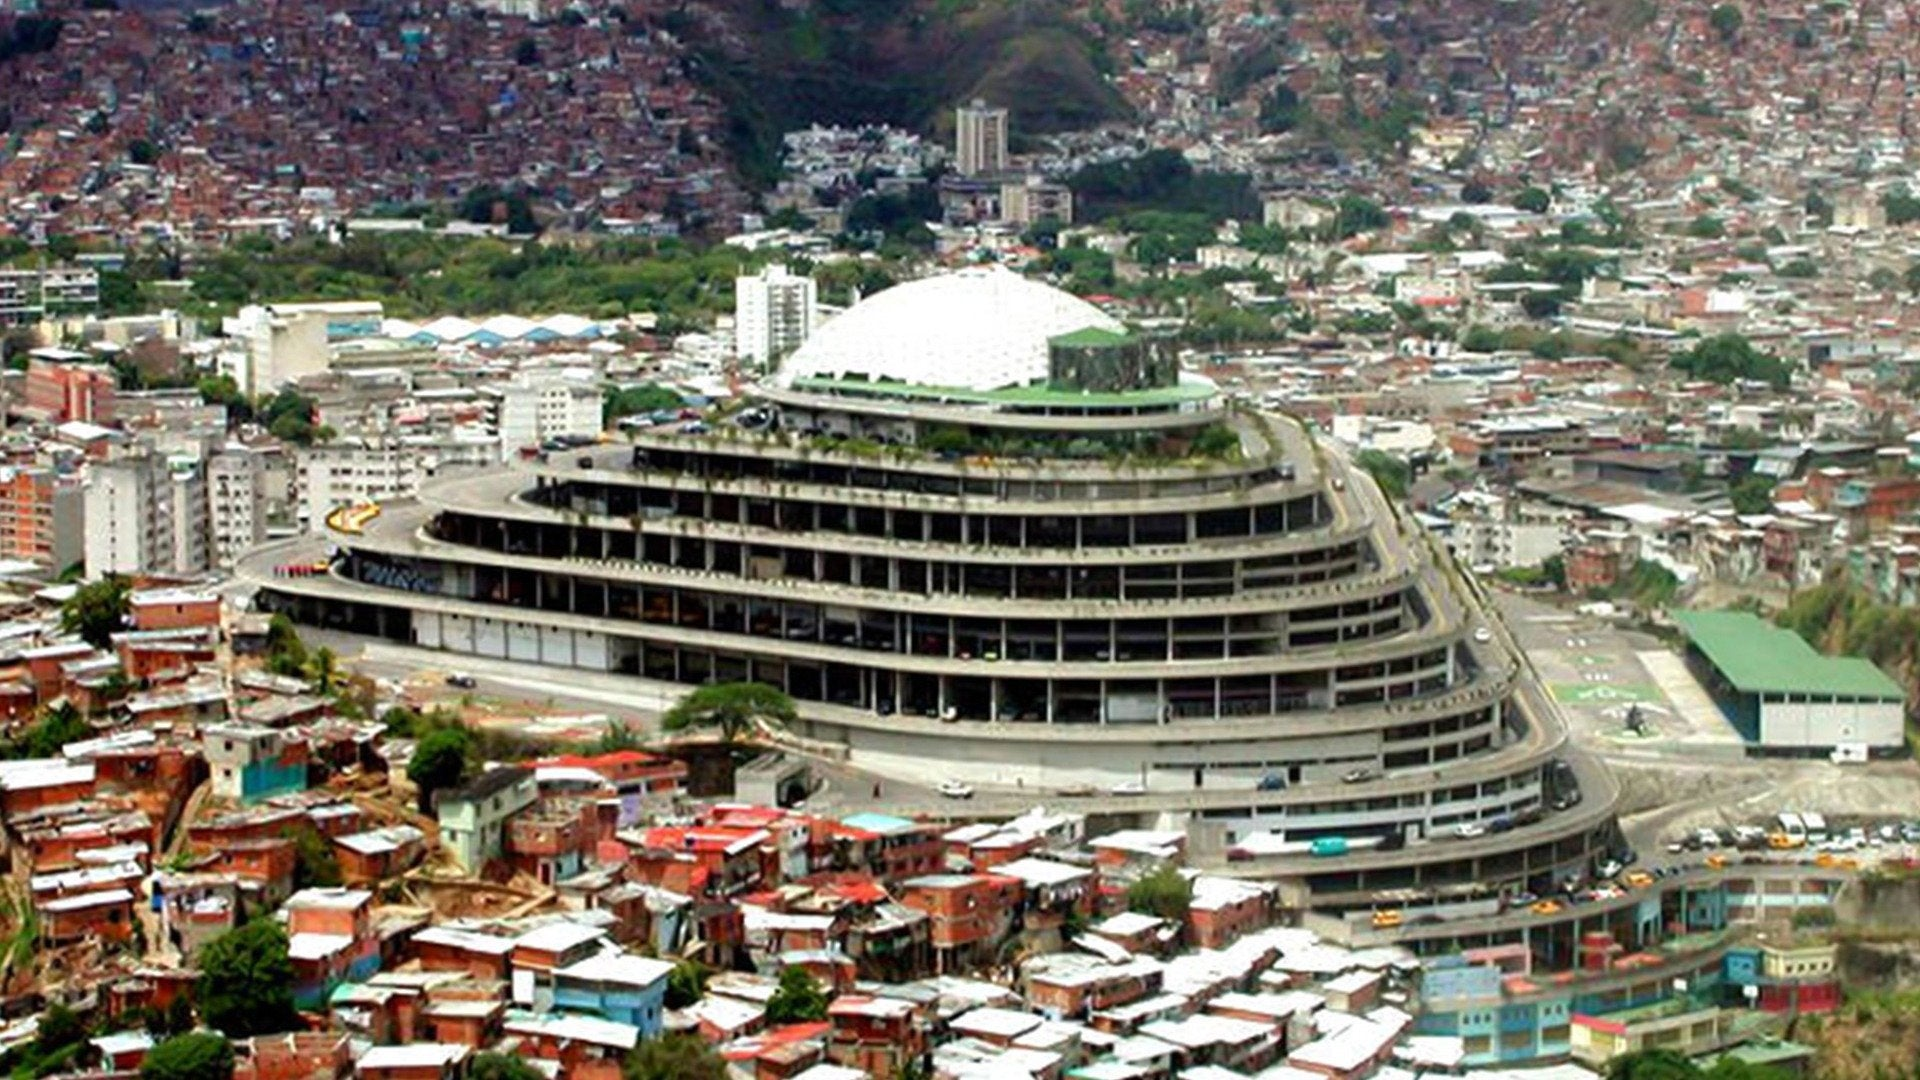 Venezuela: El Helicoide - The Shopping Mall That Became a Torture Prison